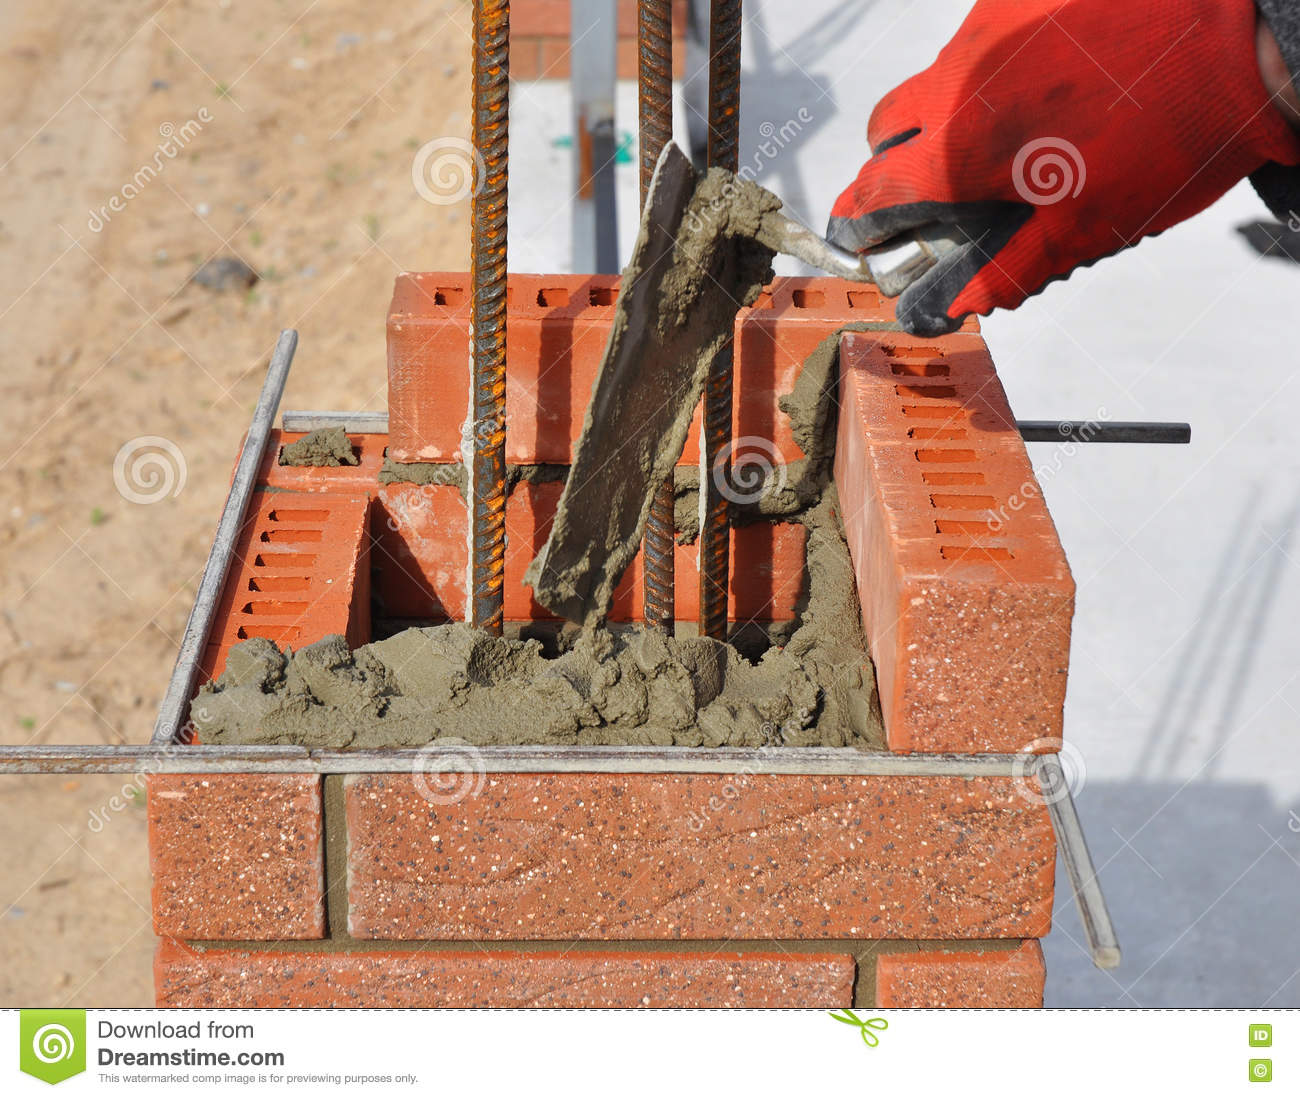 Brick Fence Construction : Bricklaying closeup bricklayer hand holding a putty knife